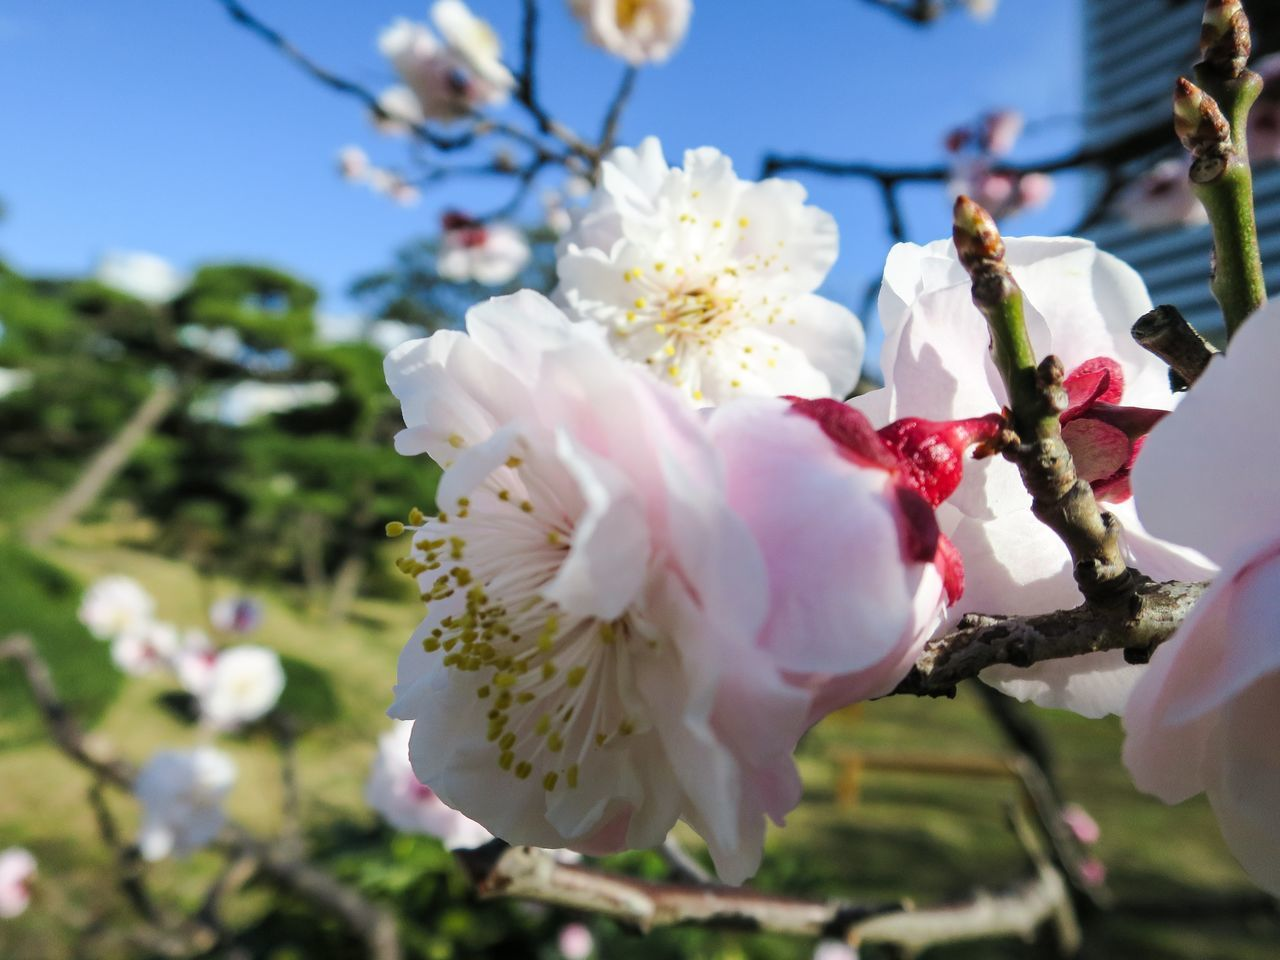 flower, fragility, petal, beauty in nature, growth, blossom, white color, nature, flower head, springtime, tree, botany, freshness, close-up, day, no people, branch, outdoors, pollen, stamen, plum blossom, blooming